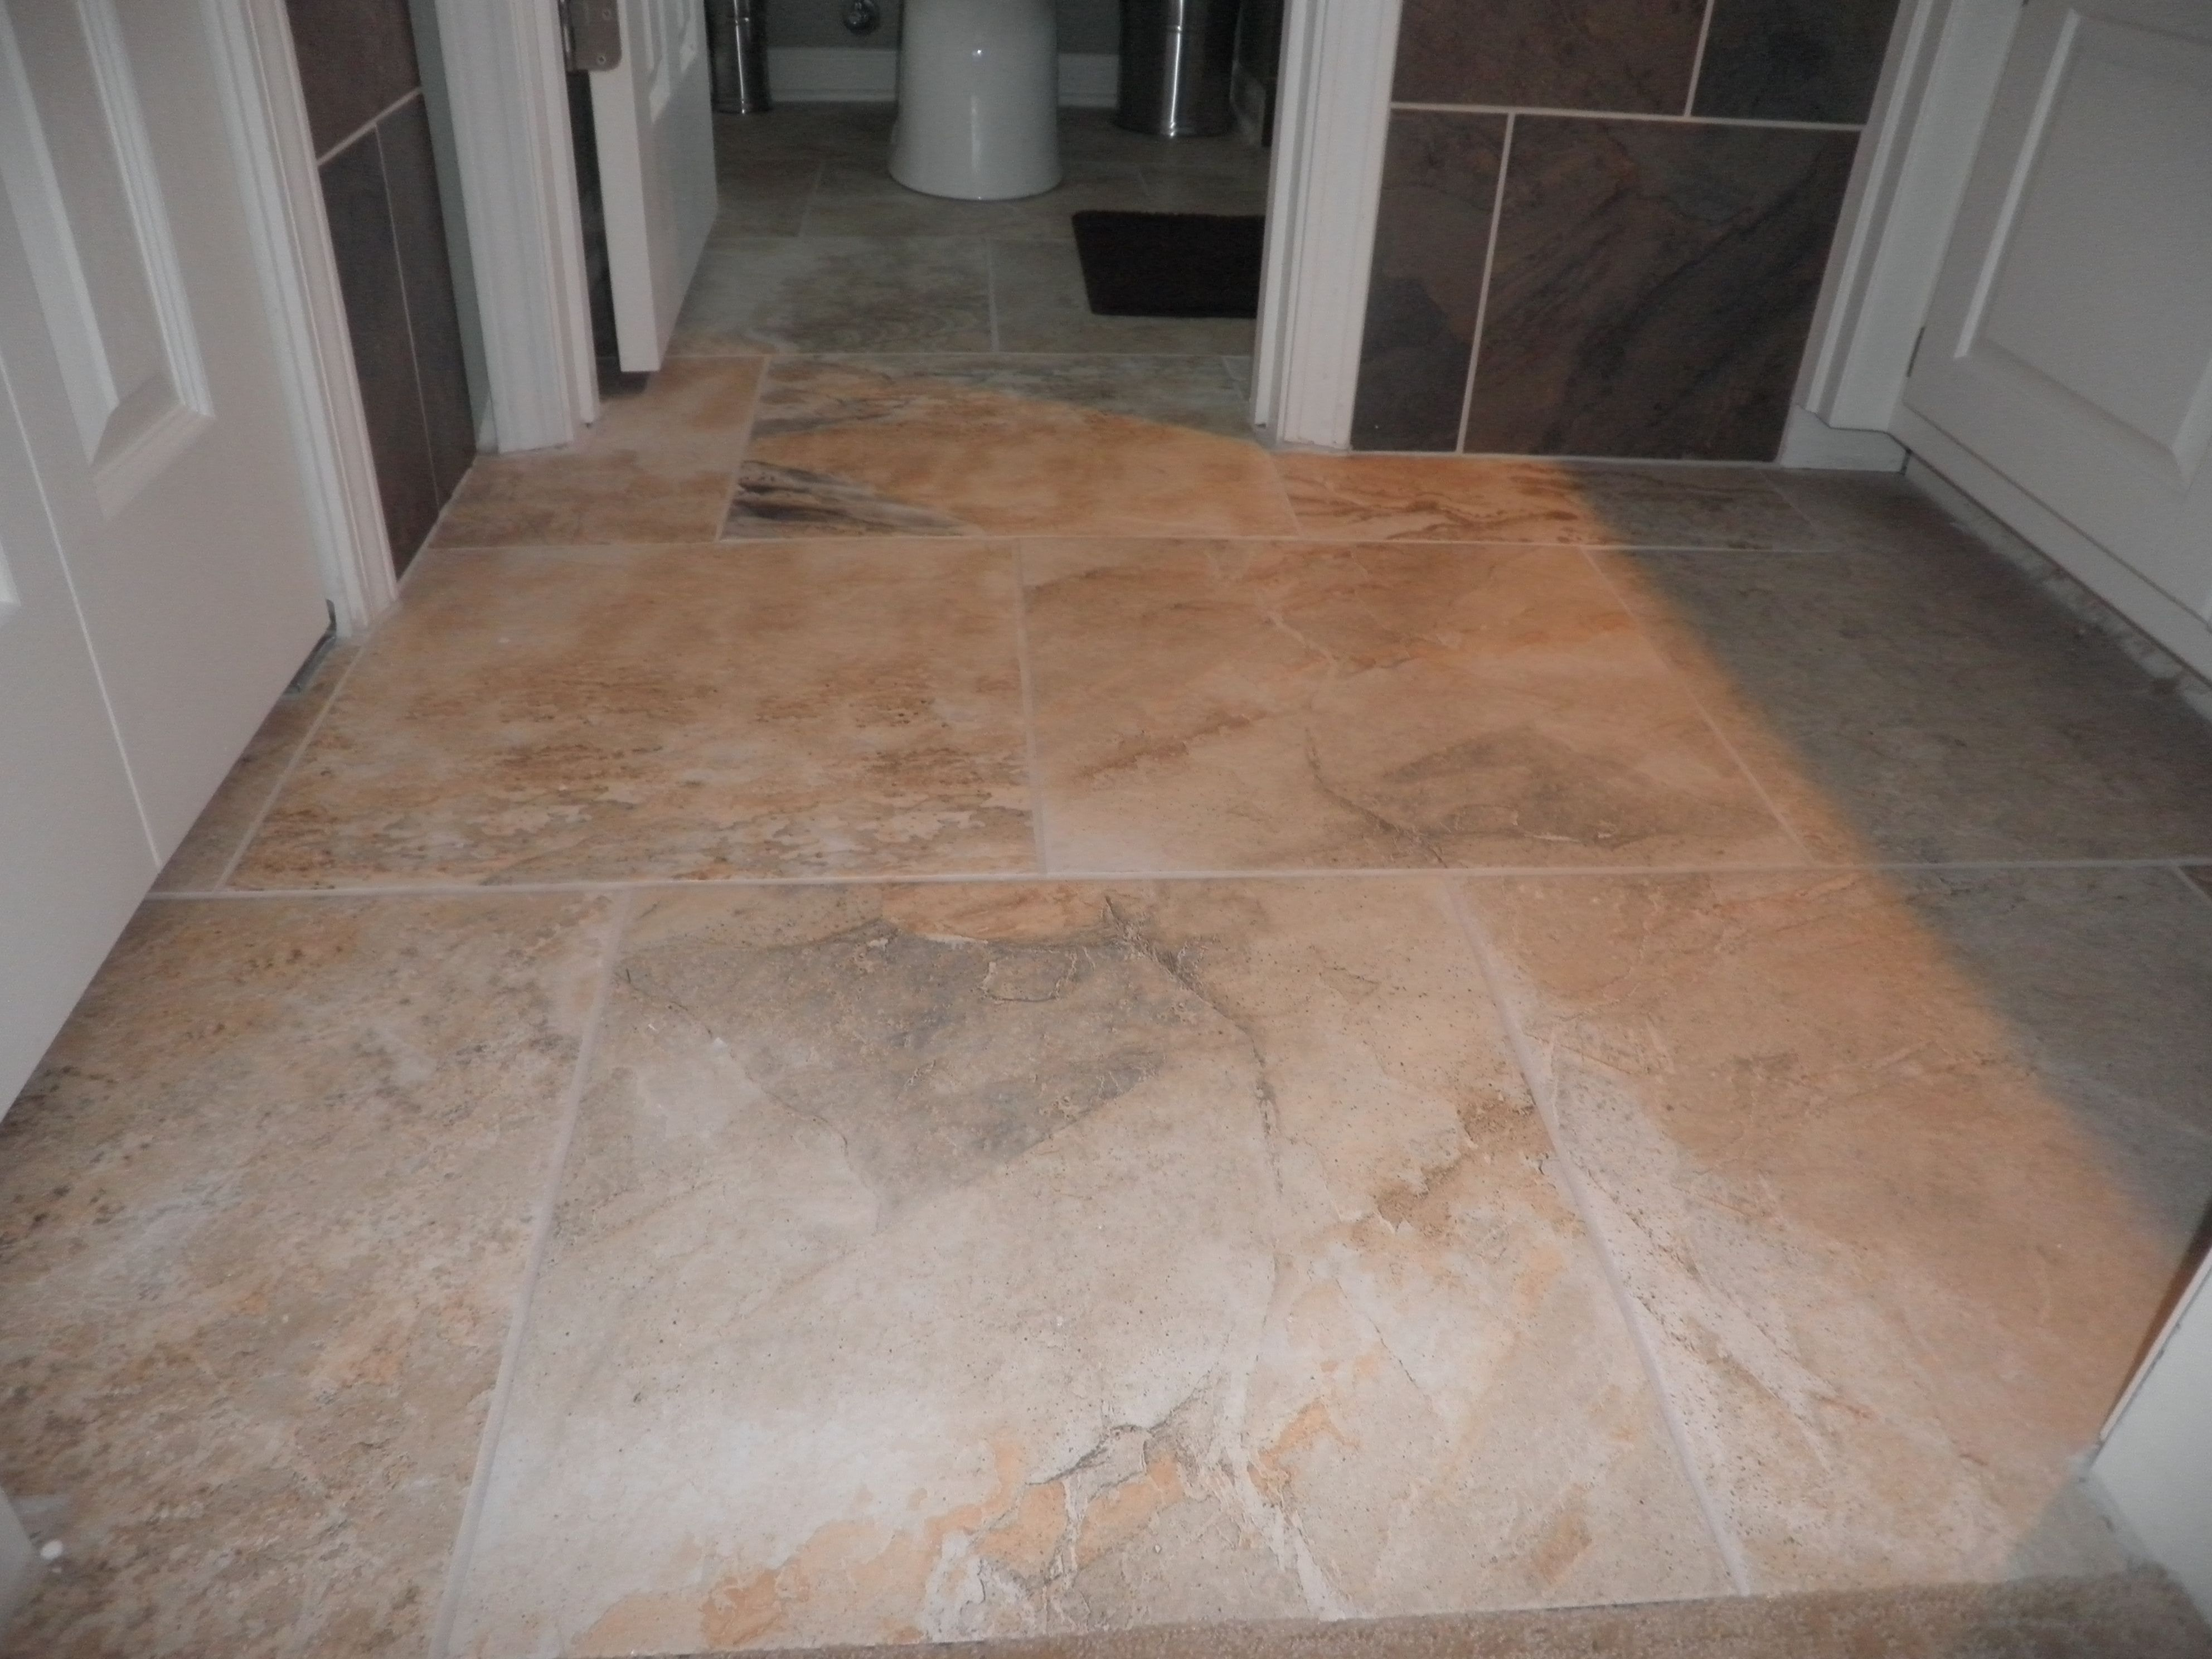 Do You Wonder How Large Tiles Will Look In A Small Room? See For Yourself